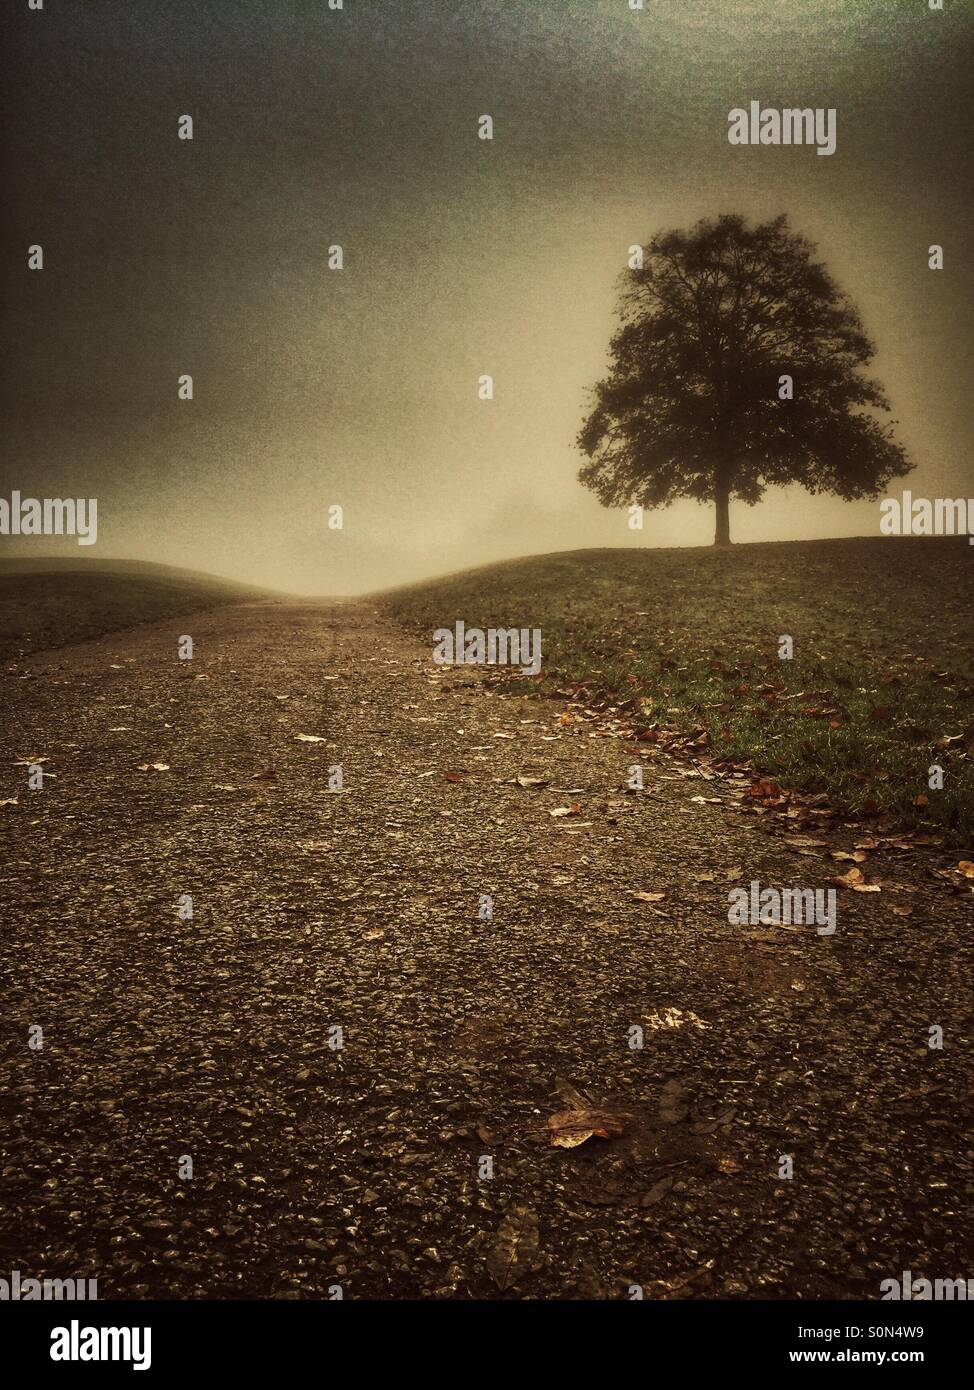 Lone tree in the countryside - Stock Image